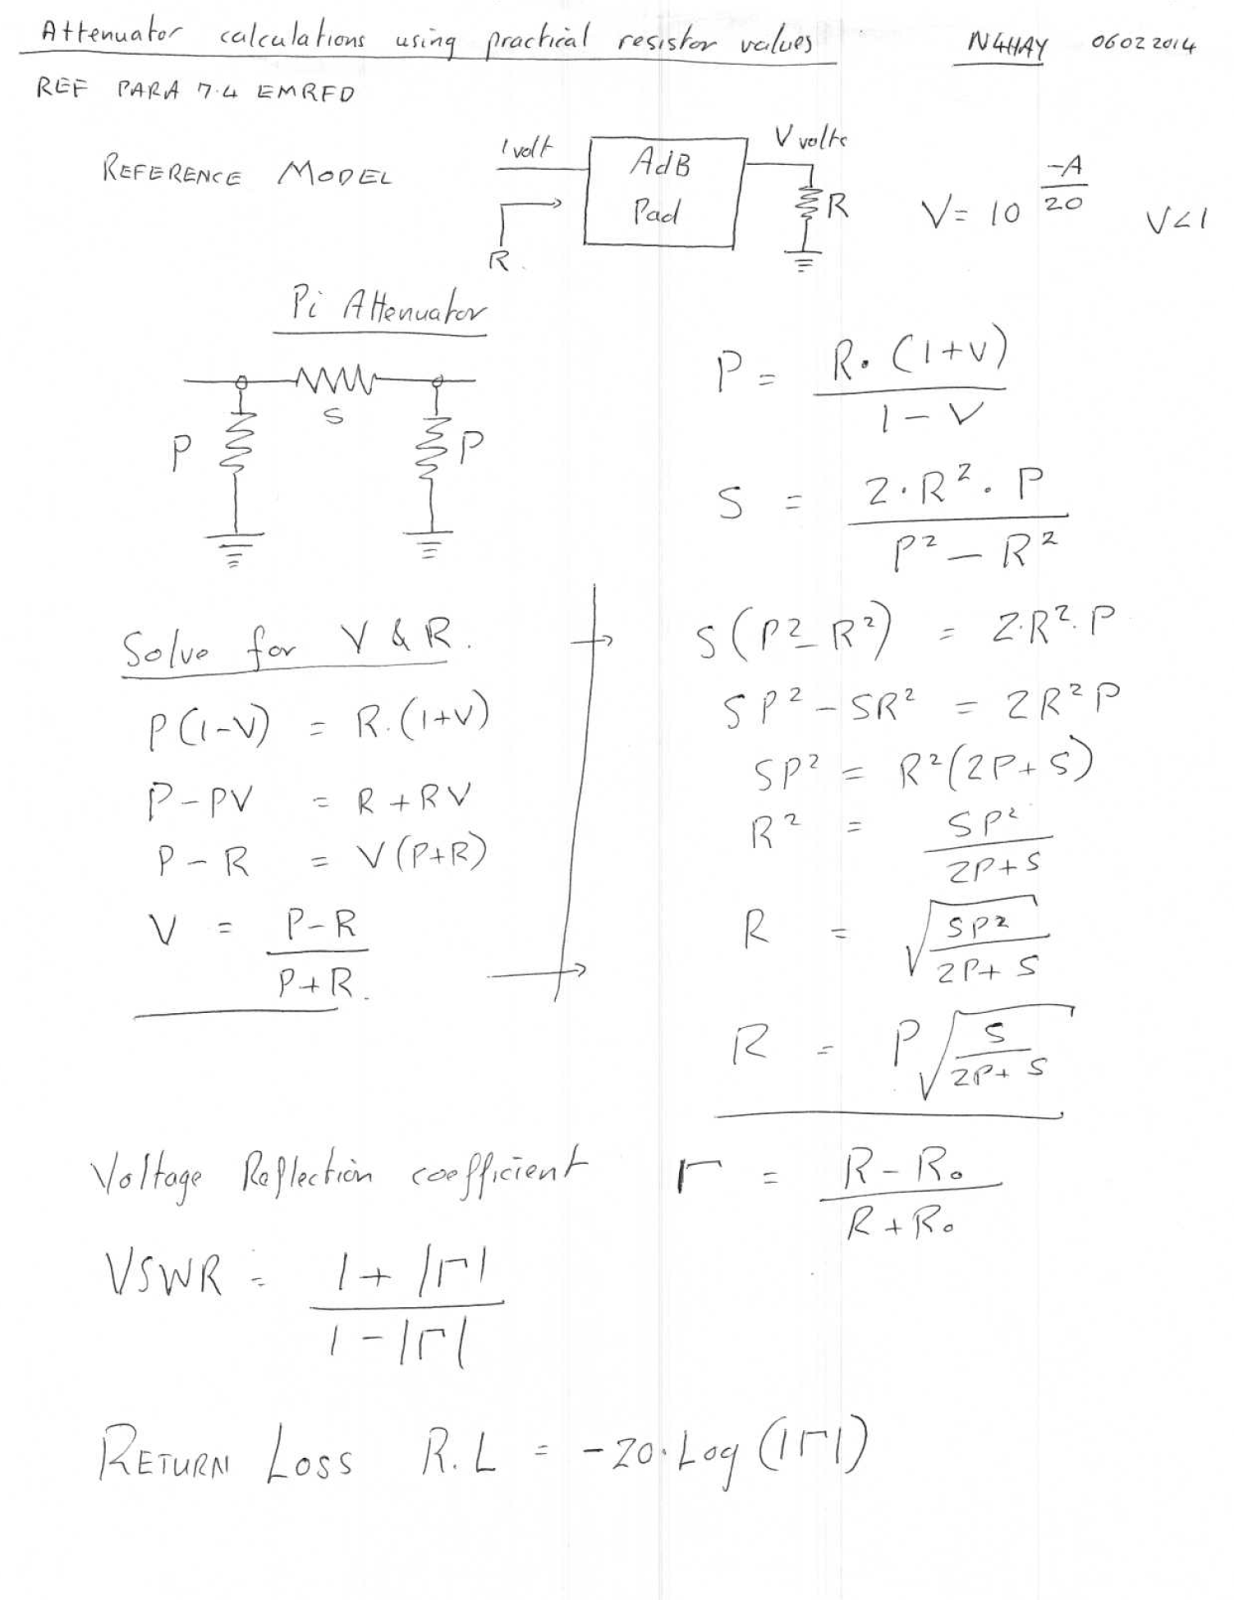 N4hay Zs6rsh Calculated Attenuator Return Loss Using